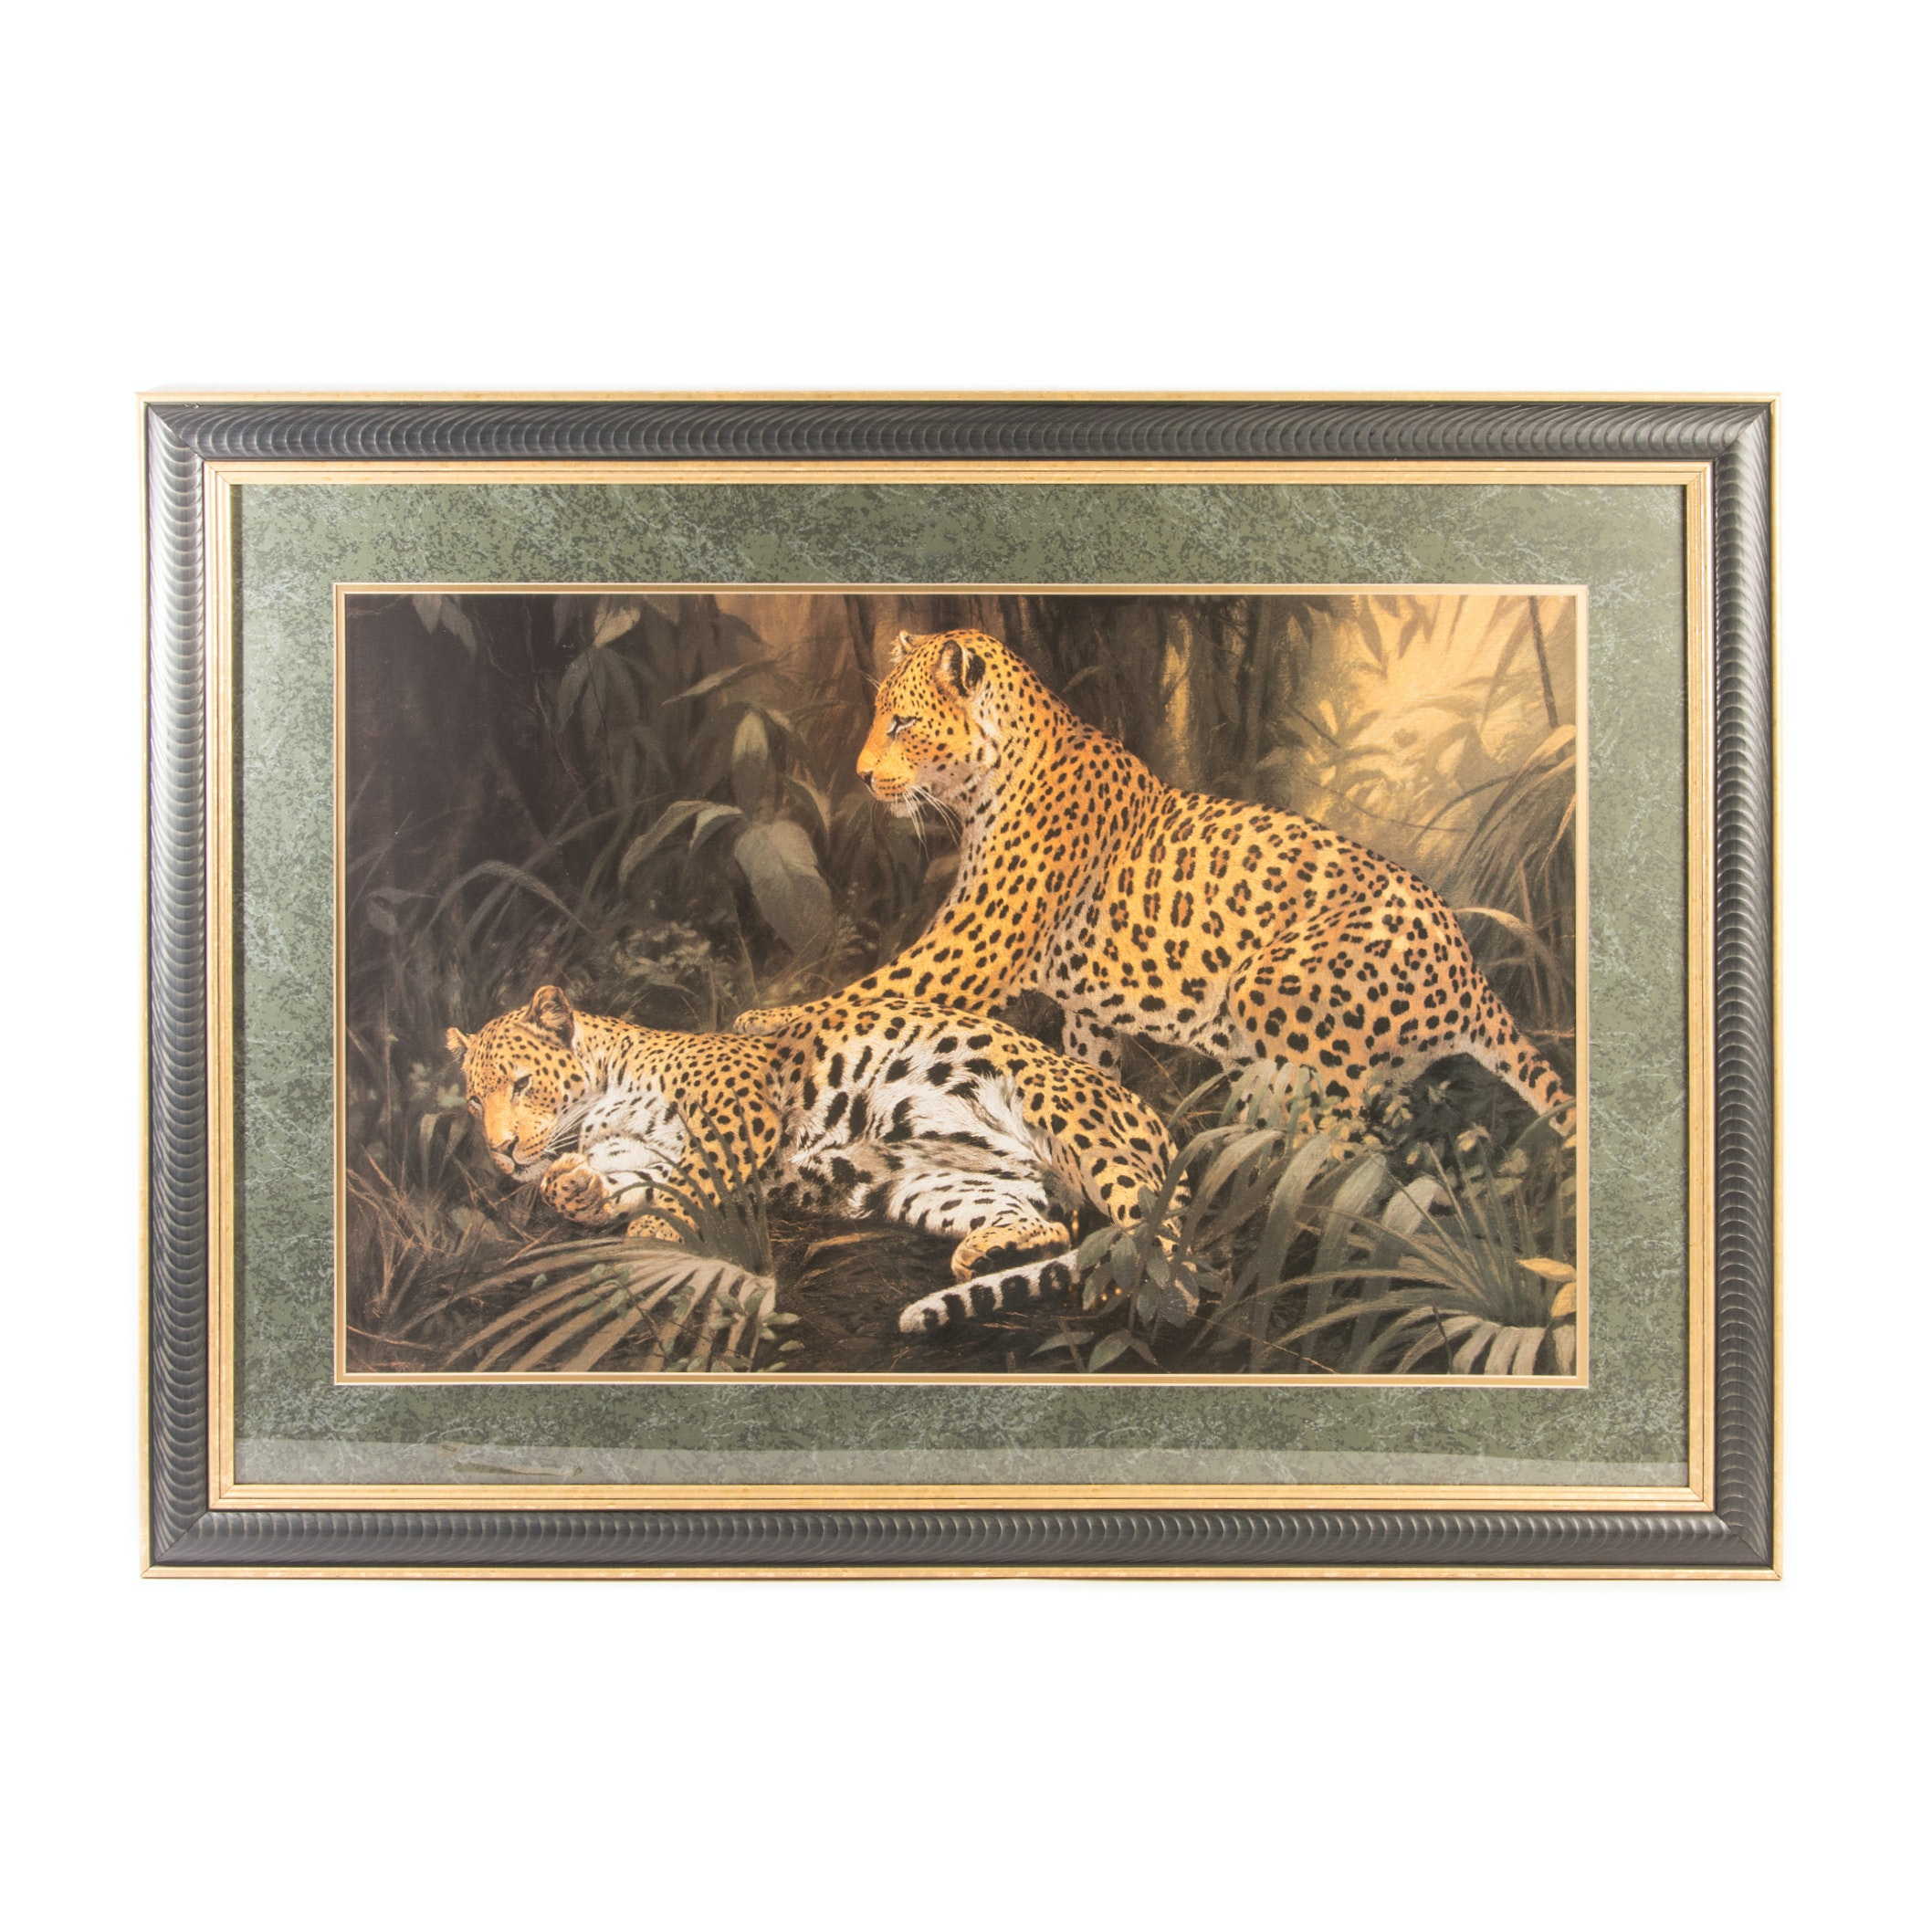 Large Offset Lithograph Depicting Leopards